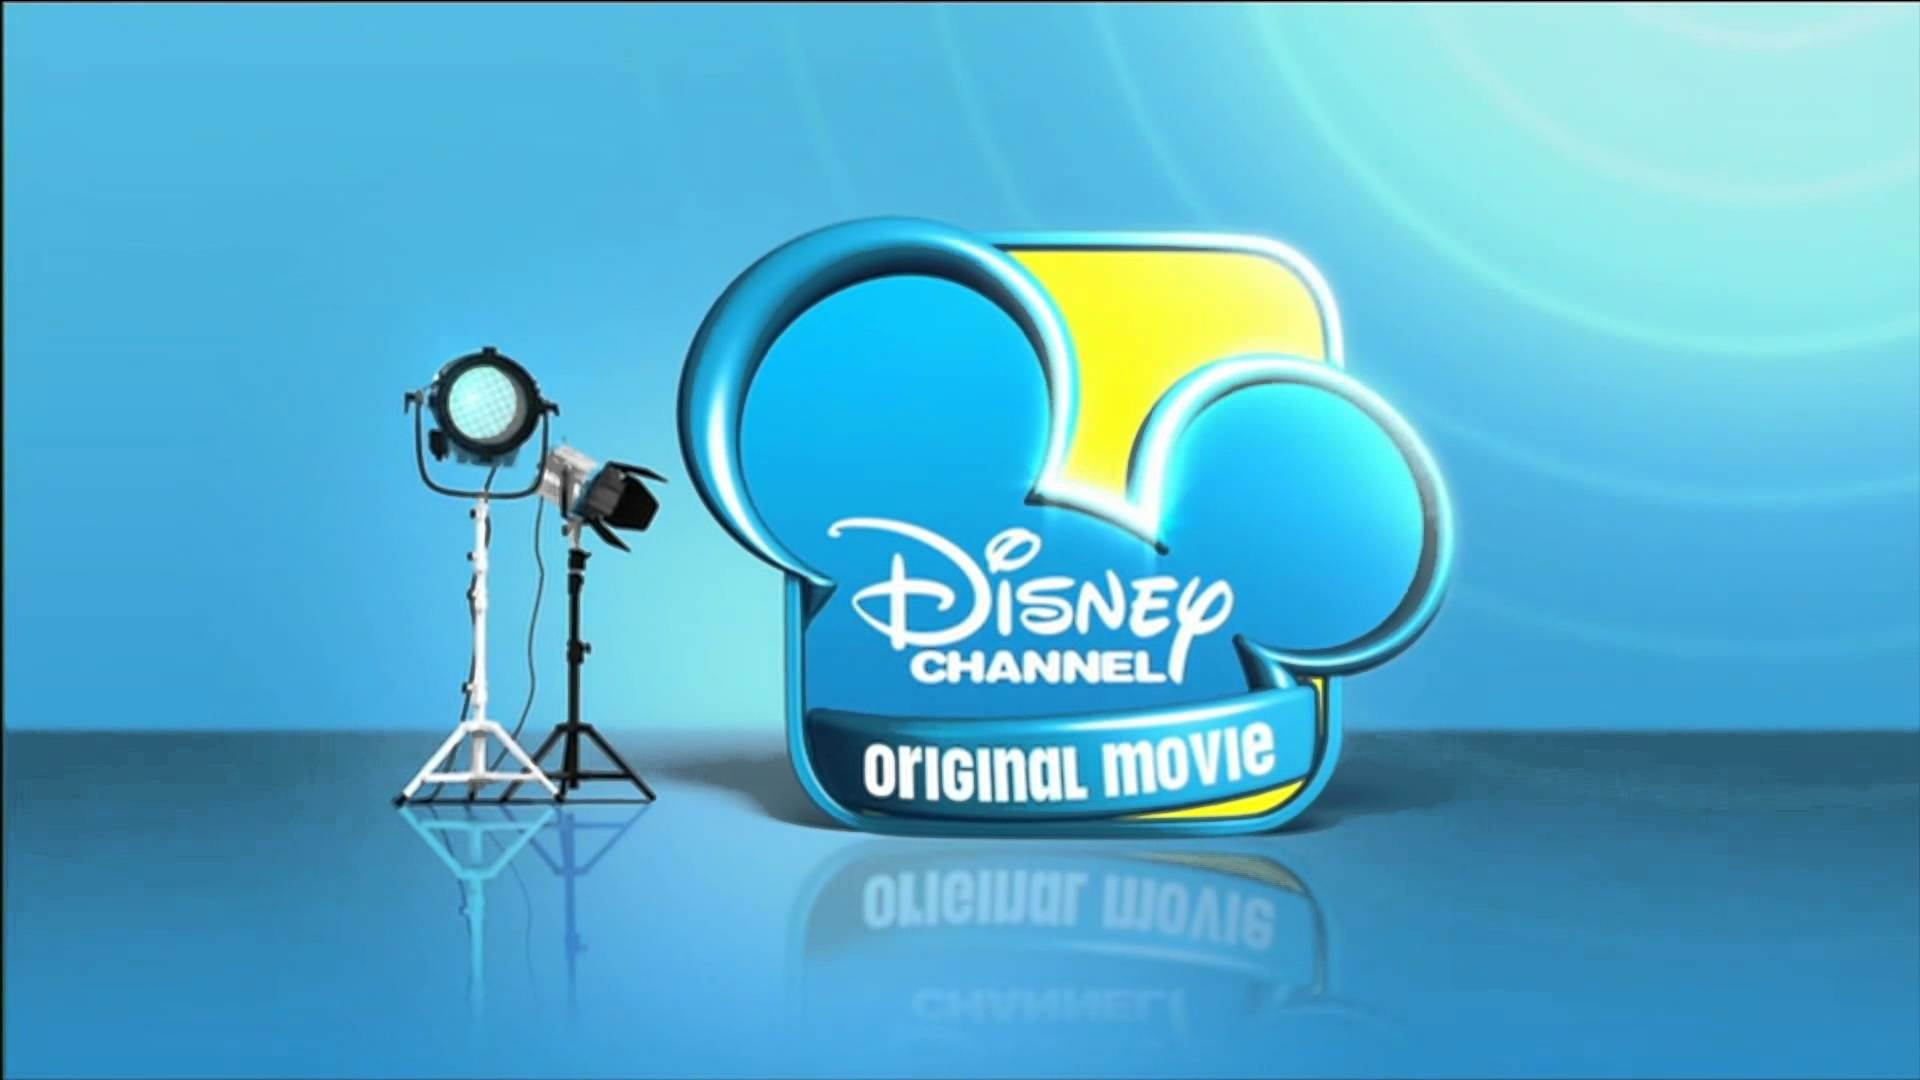 Disney Channel Wallpaper 63 Images